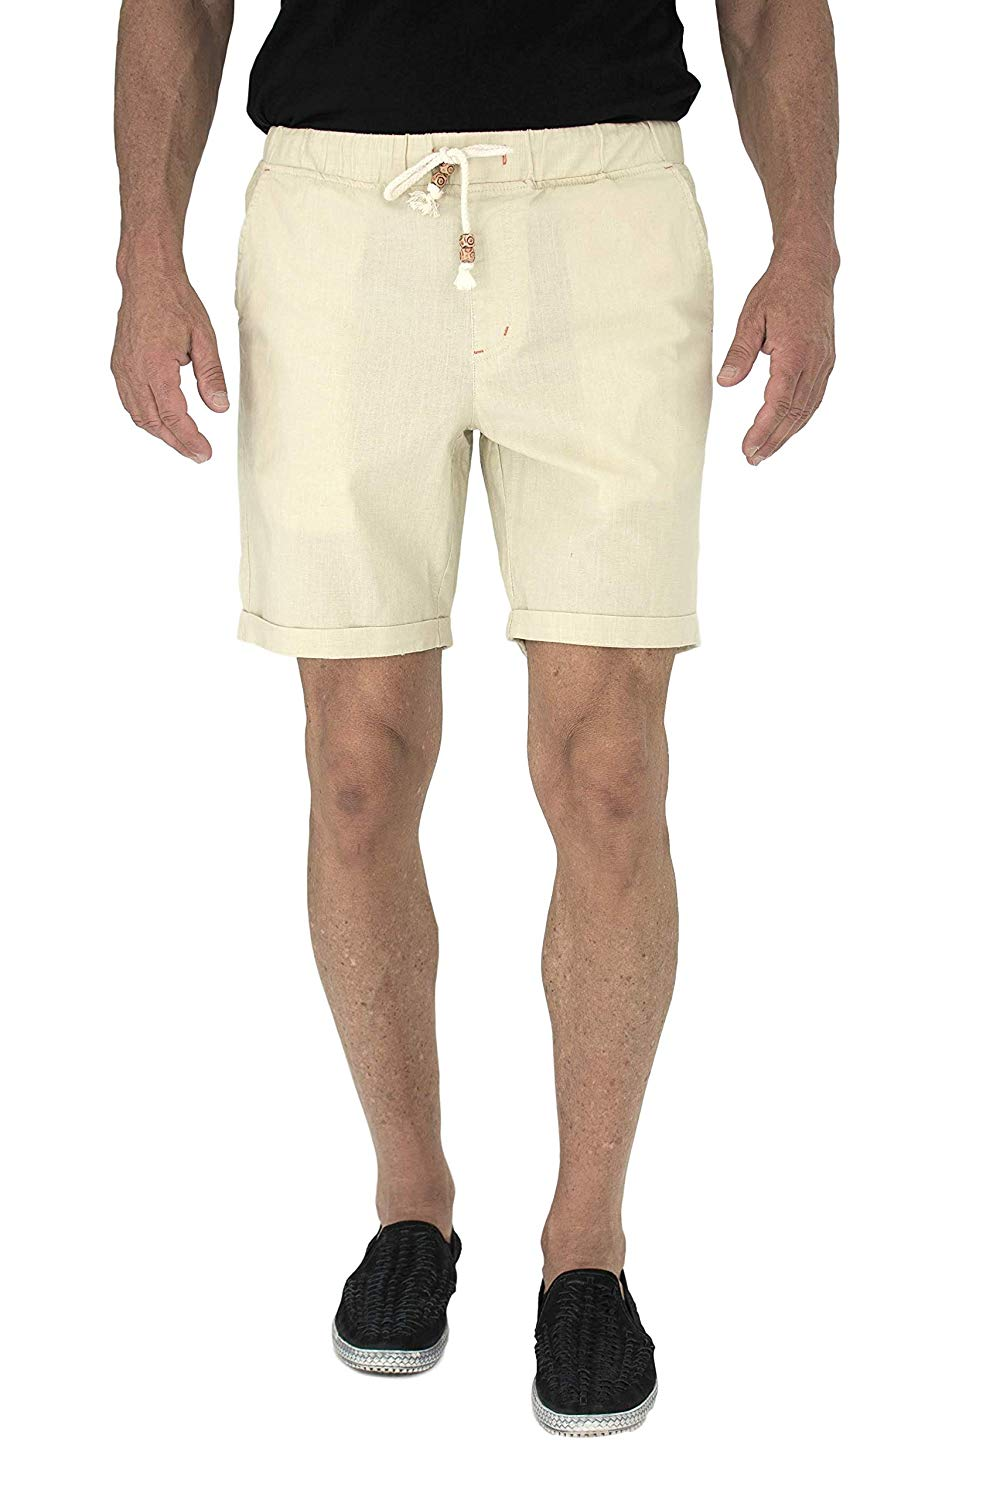 28e99998ac Short Fin Mens Walking Shorts W/Full Elastic Waist Made with Stretch Cotton